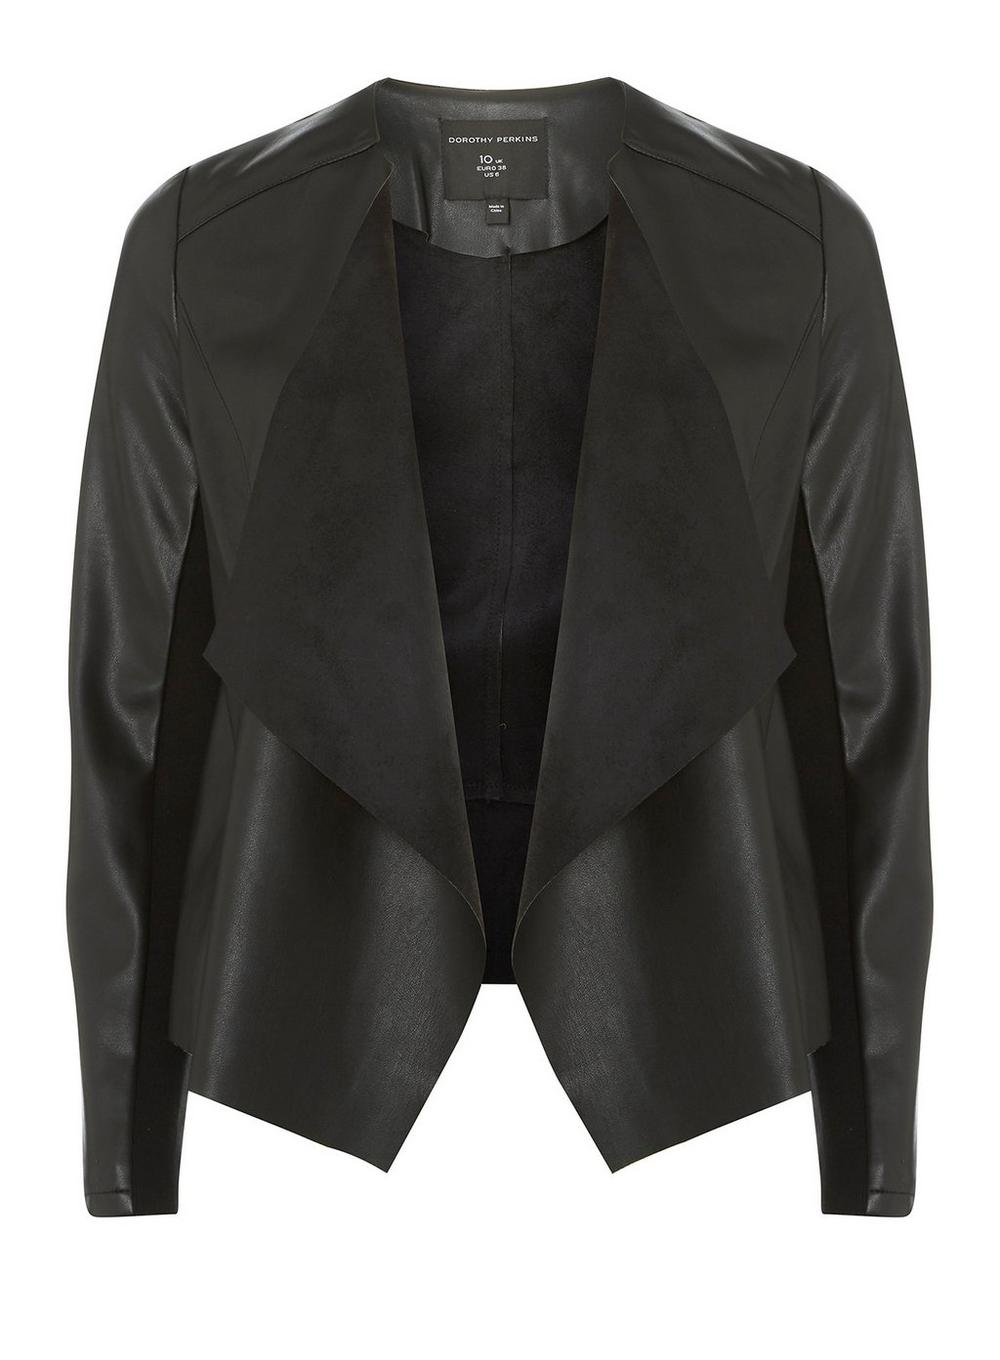 top picks - leather jacket